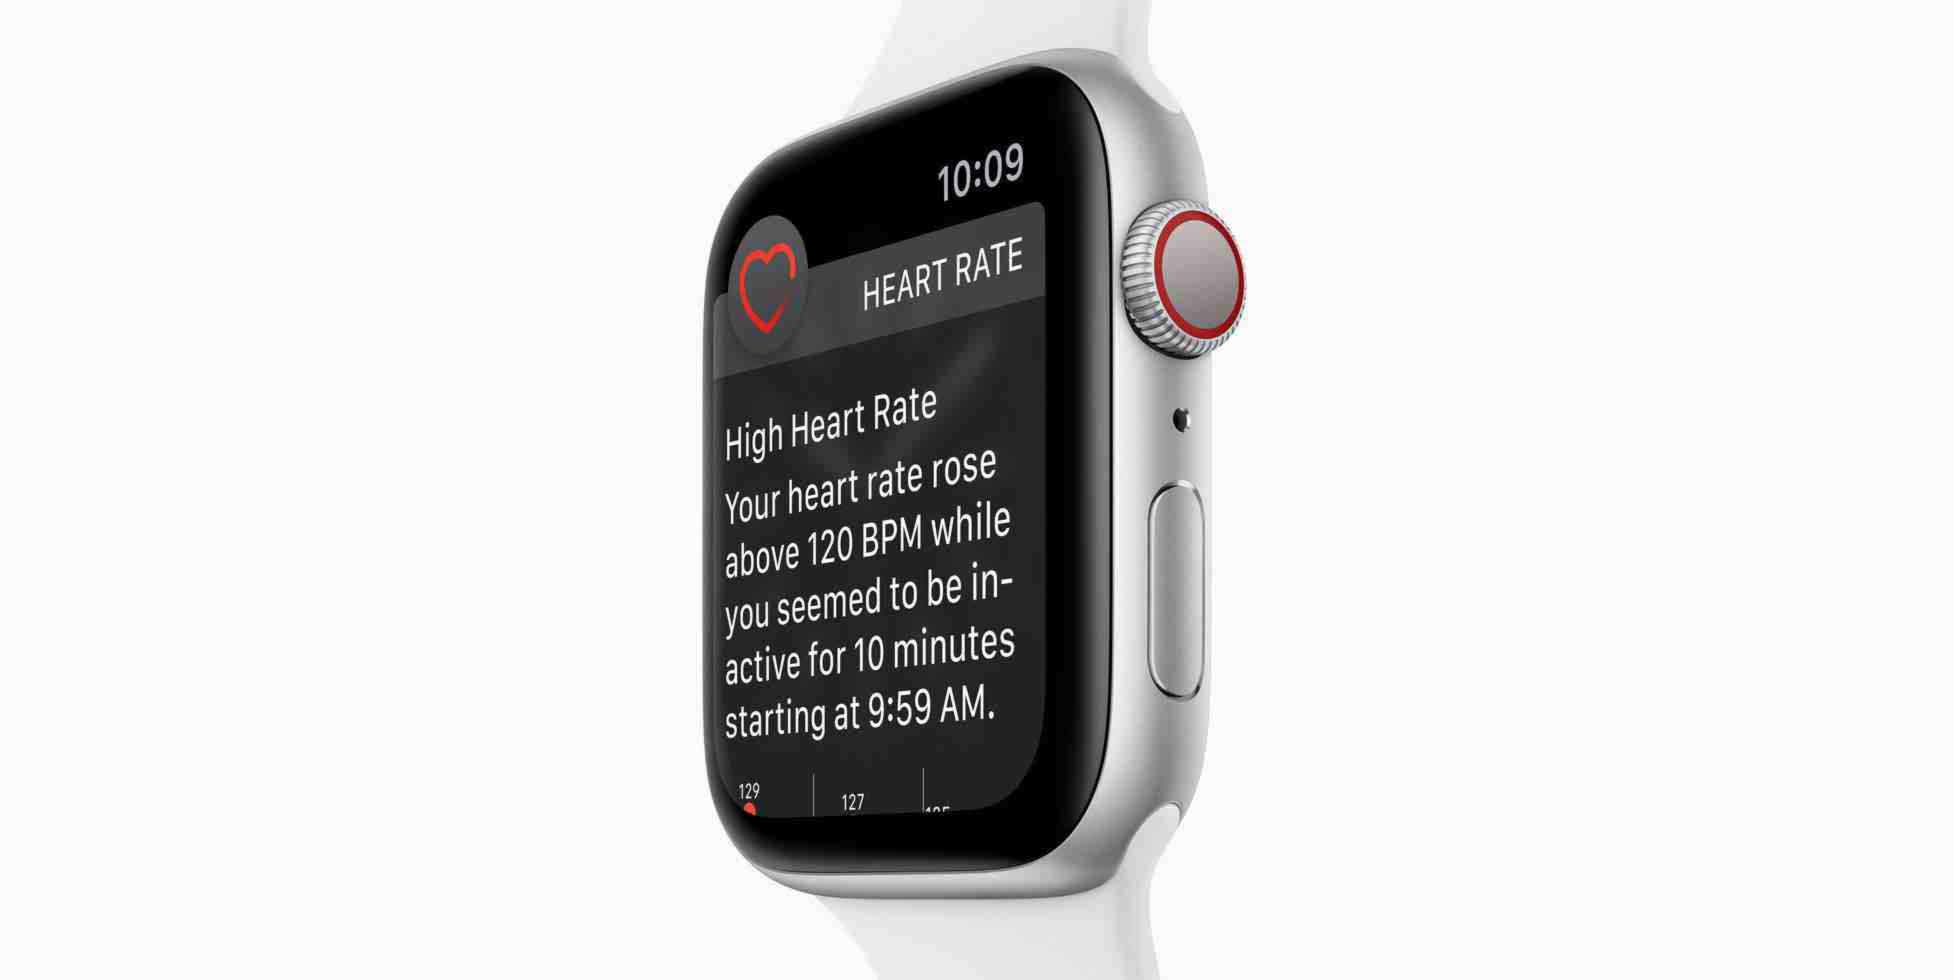 Your Heart Rate. What It Is And Where You Can See It In The Apple Watch